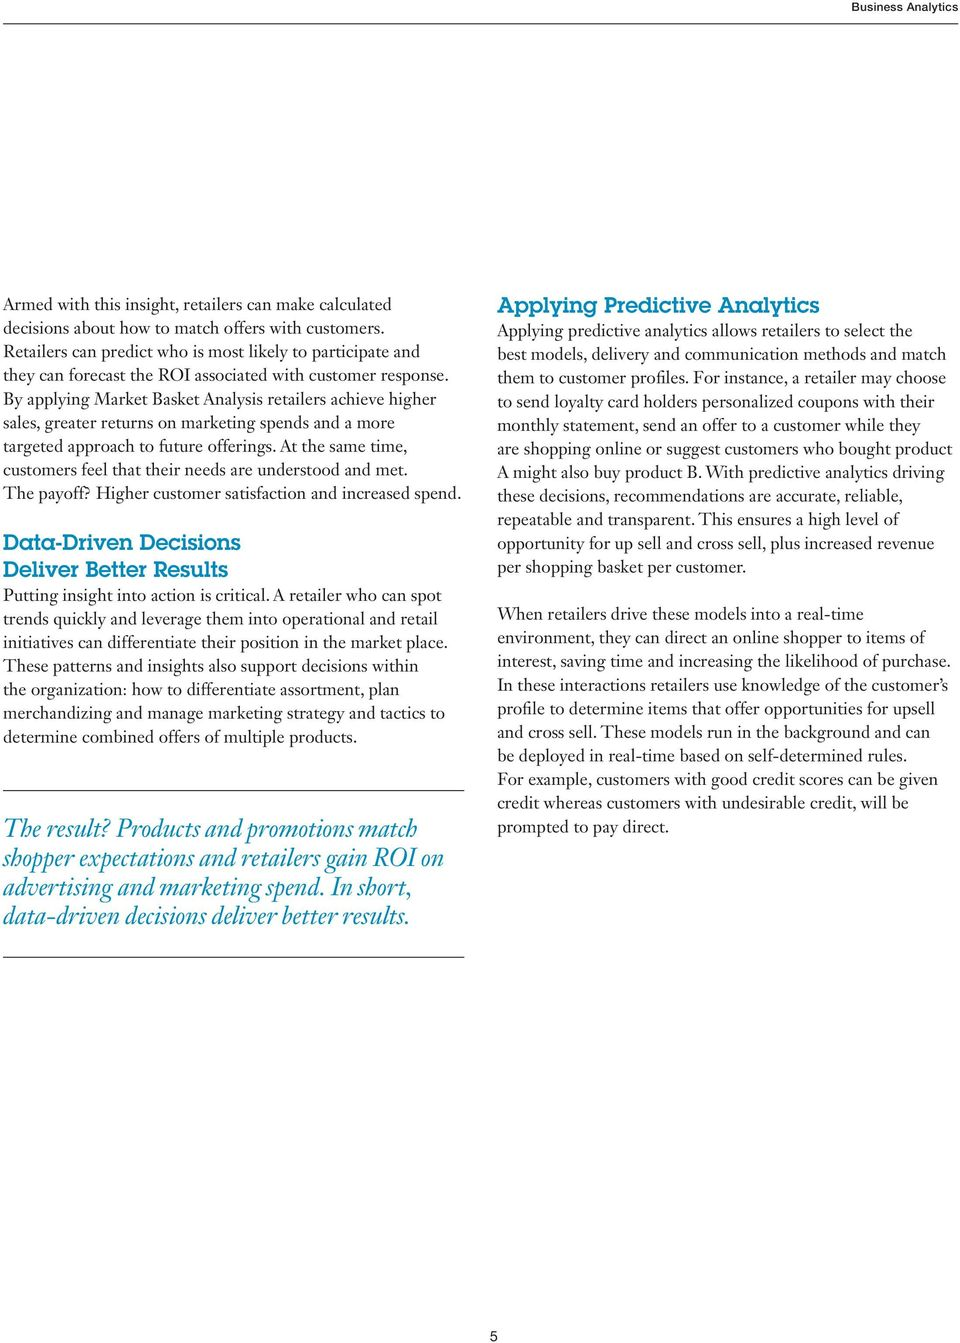 By applying Market Basket Analysis retailers achieve higher sales, greater returns on marketing spends and a more targeted approach to future offerings.